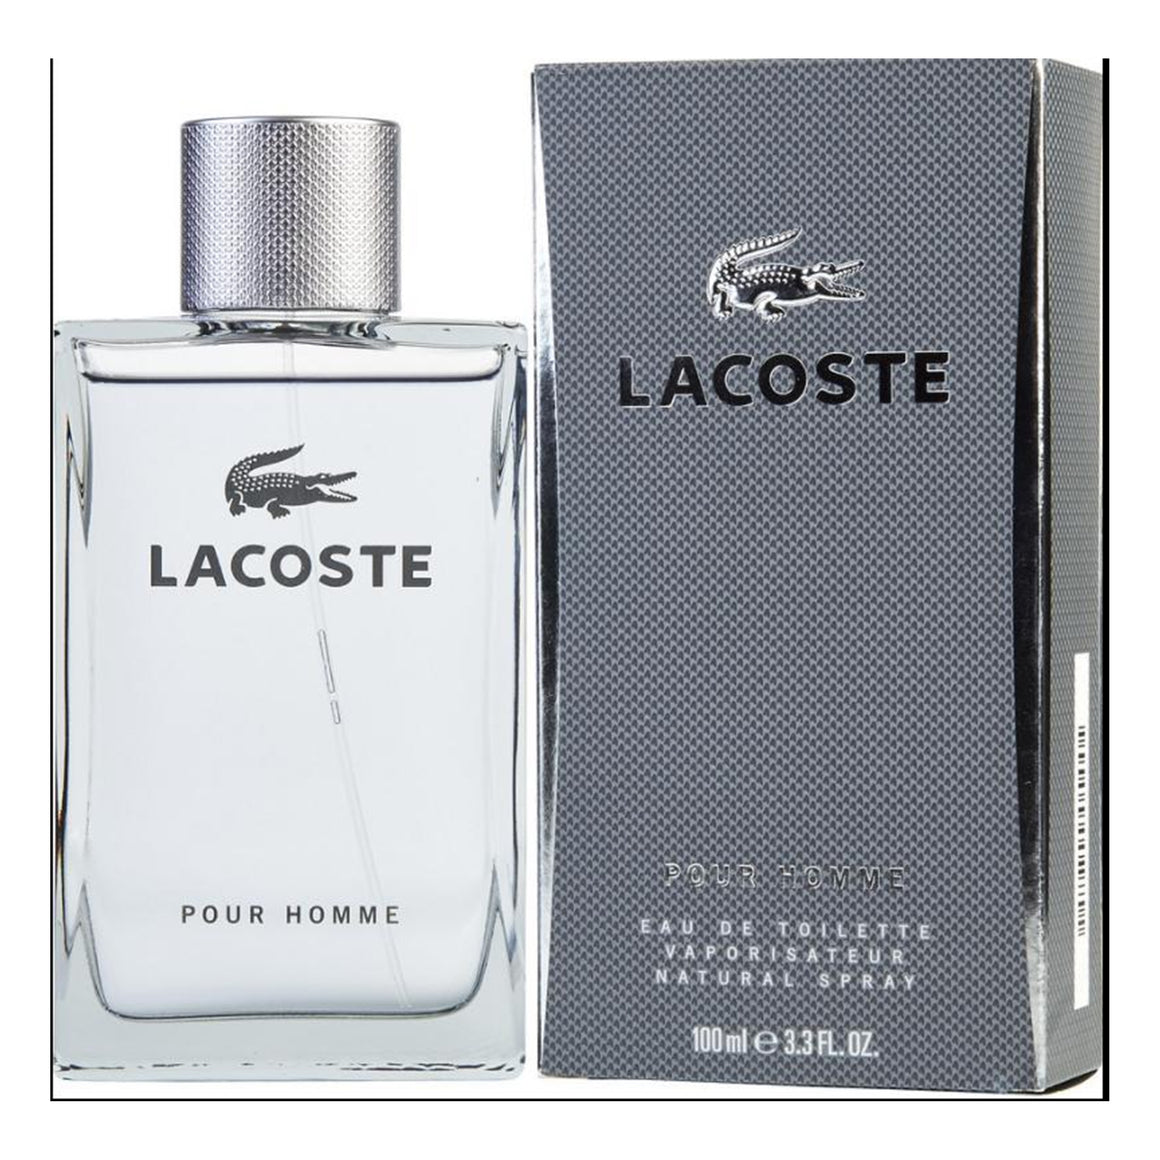 Lacoste Grey Box Pour Homme Eau de Toilette for Men 3.3 oz.